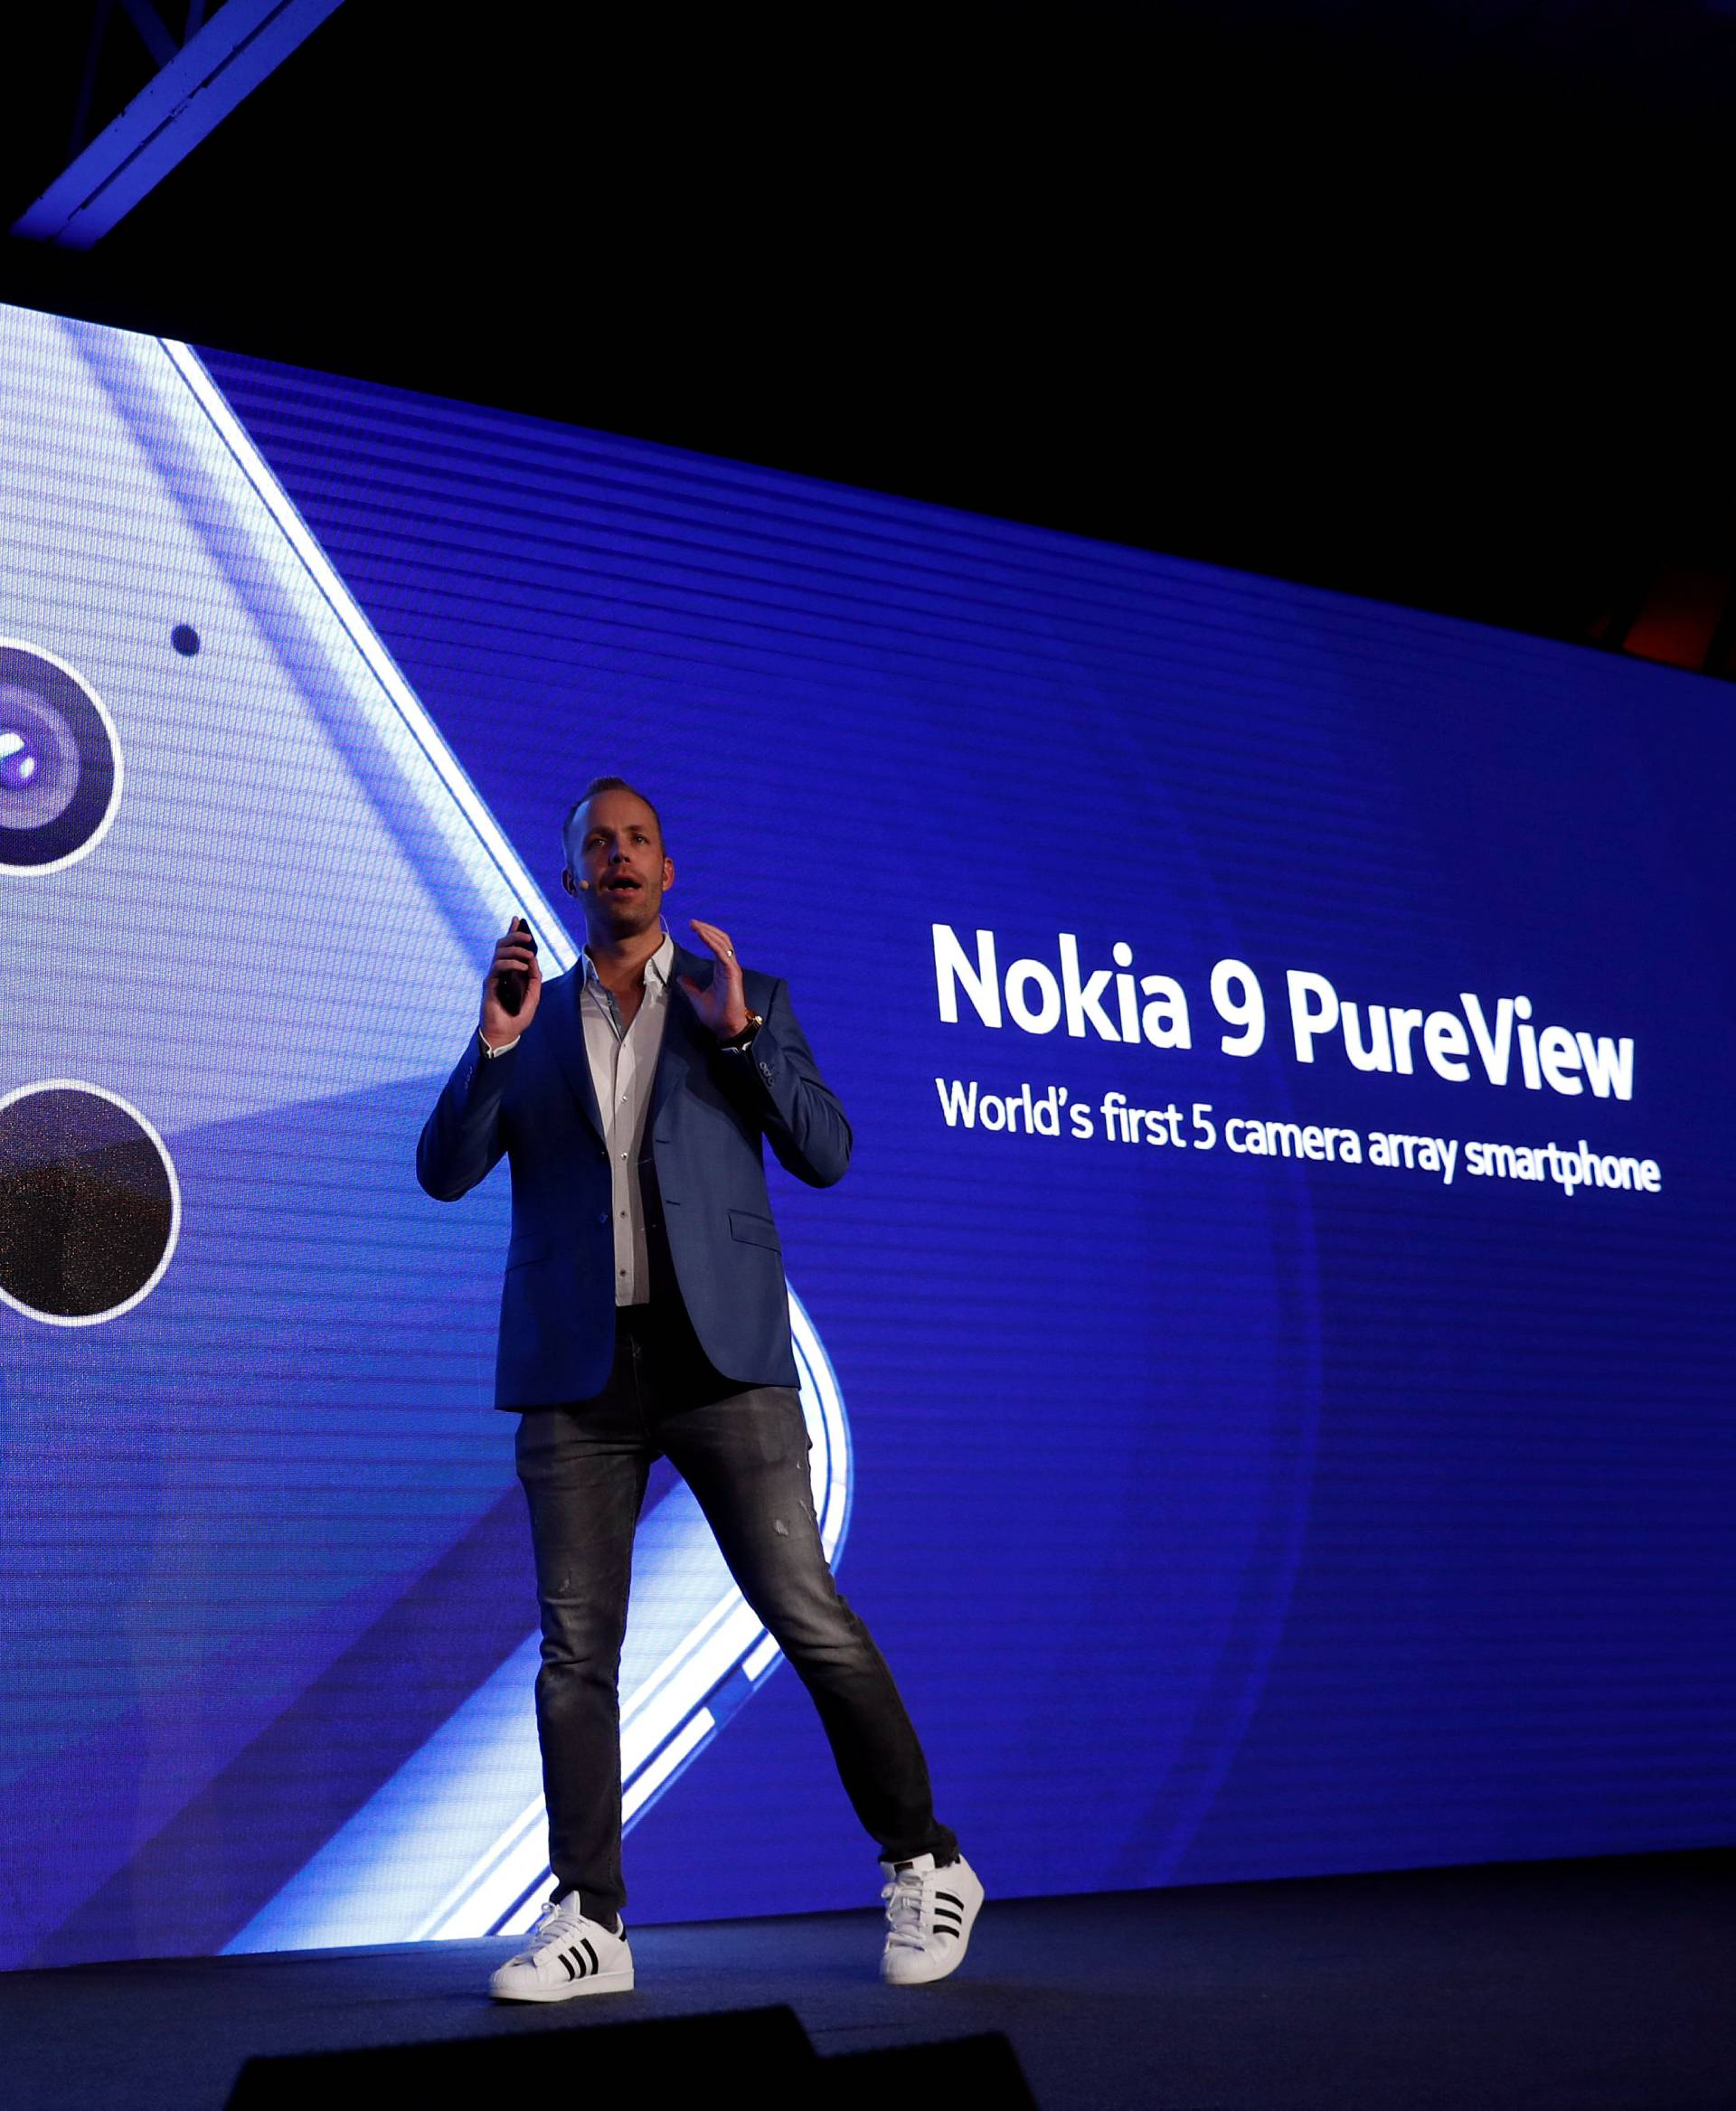 HMD Global Product Officer Juho Sarvikas, presents the new Nokia 9 PureView during the Mobile World Congress in Barcelona